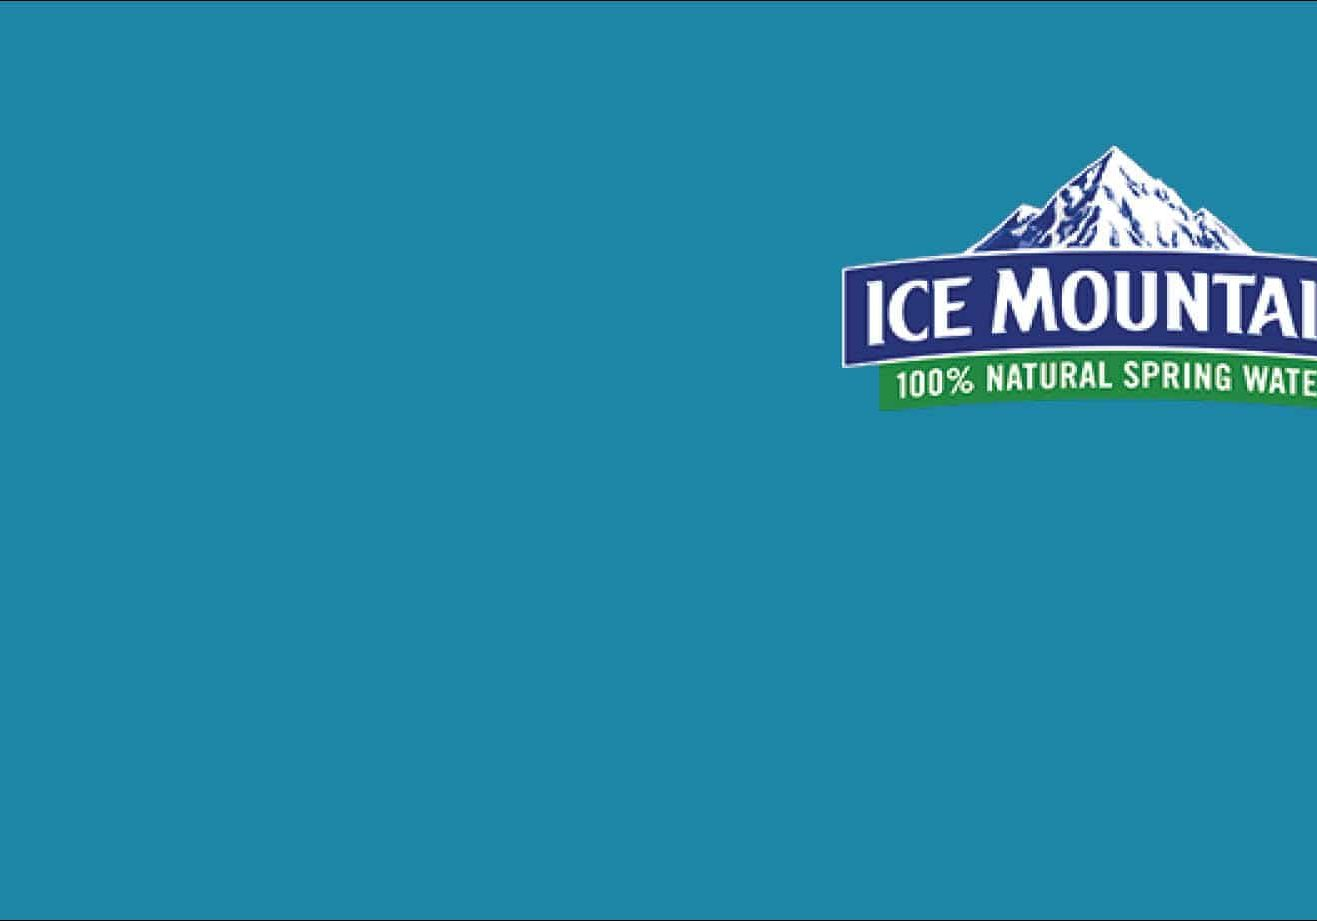 05.14.21 Ice Mountain Blog Featured Image